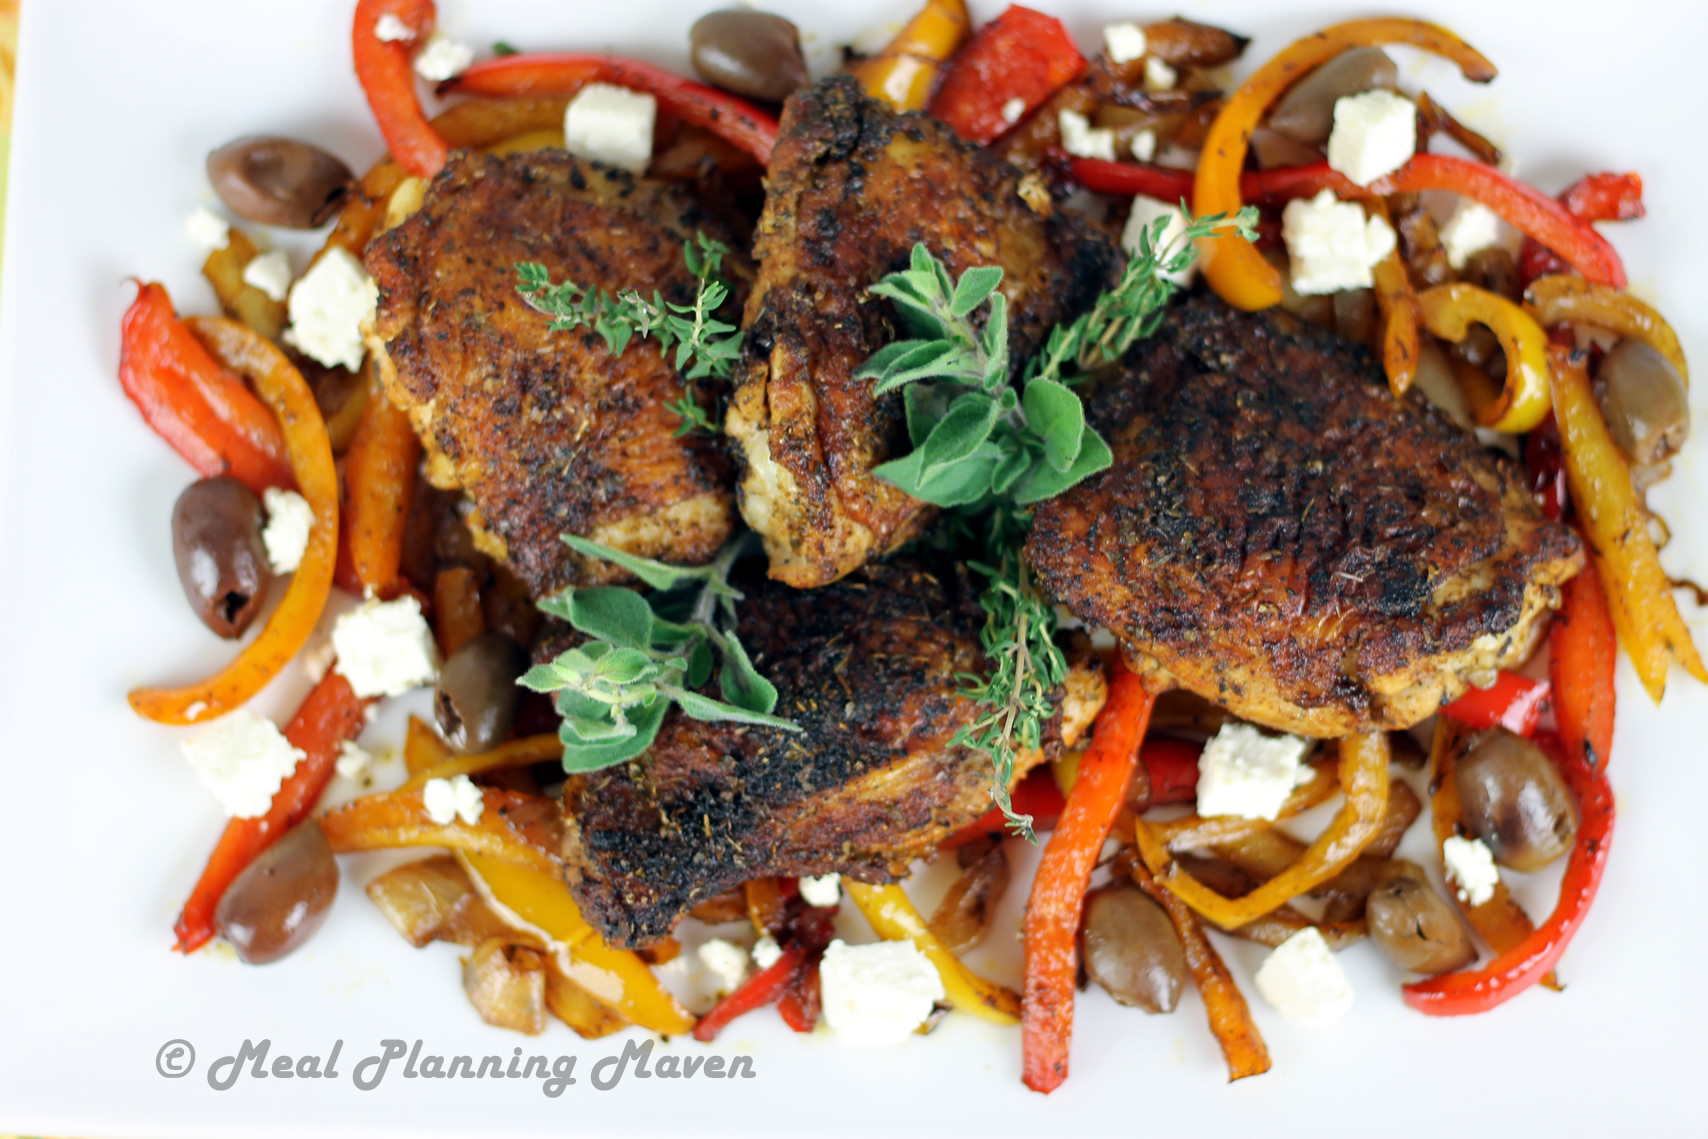 Mediterranean-Spiced Chicken Thighs